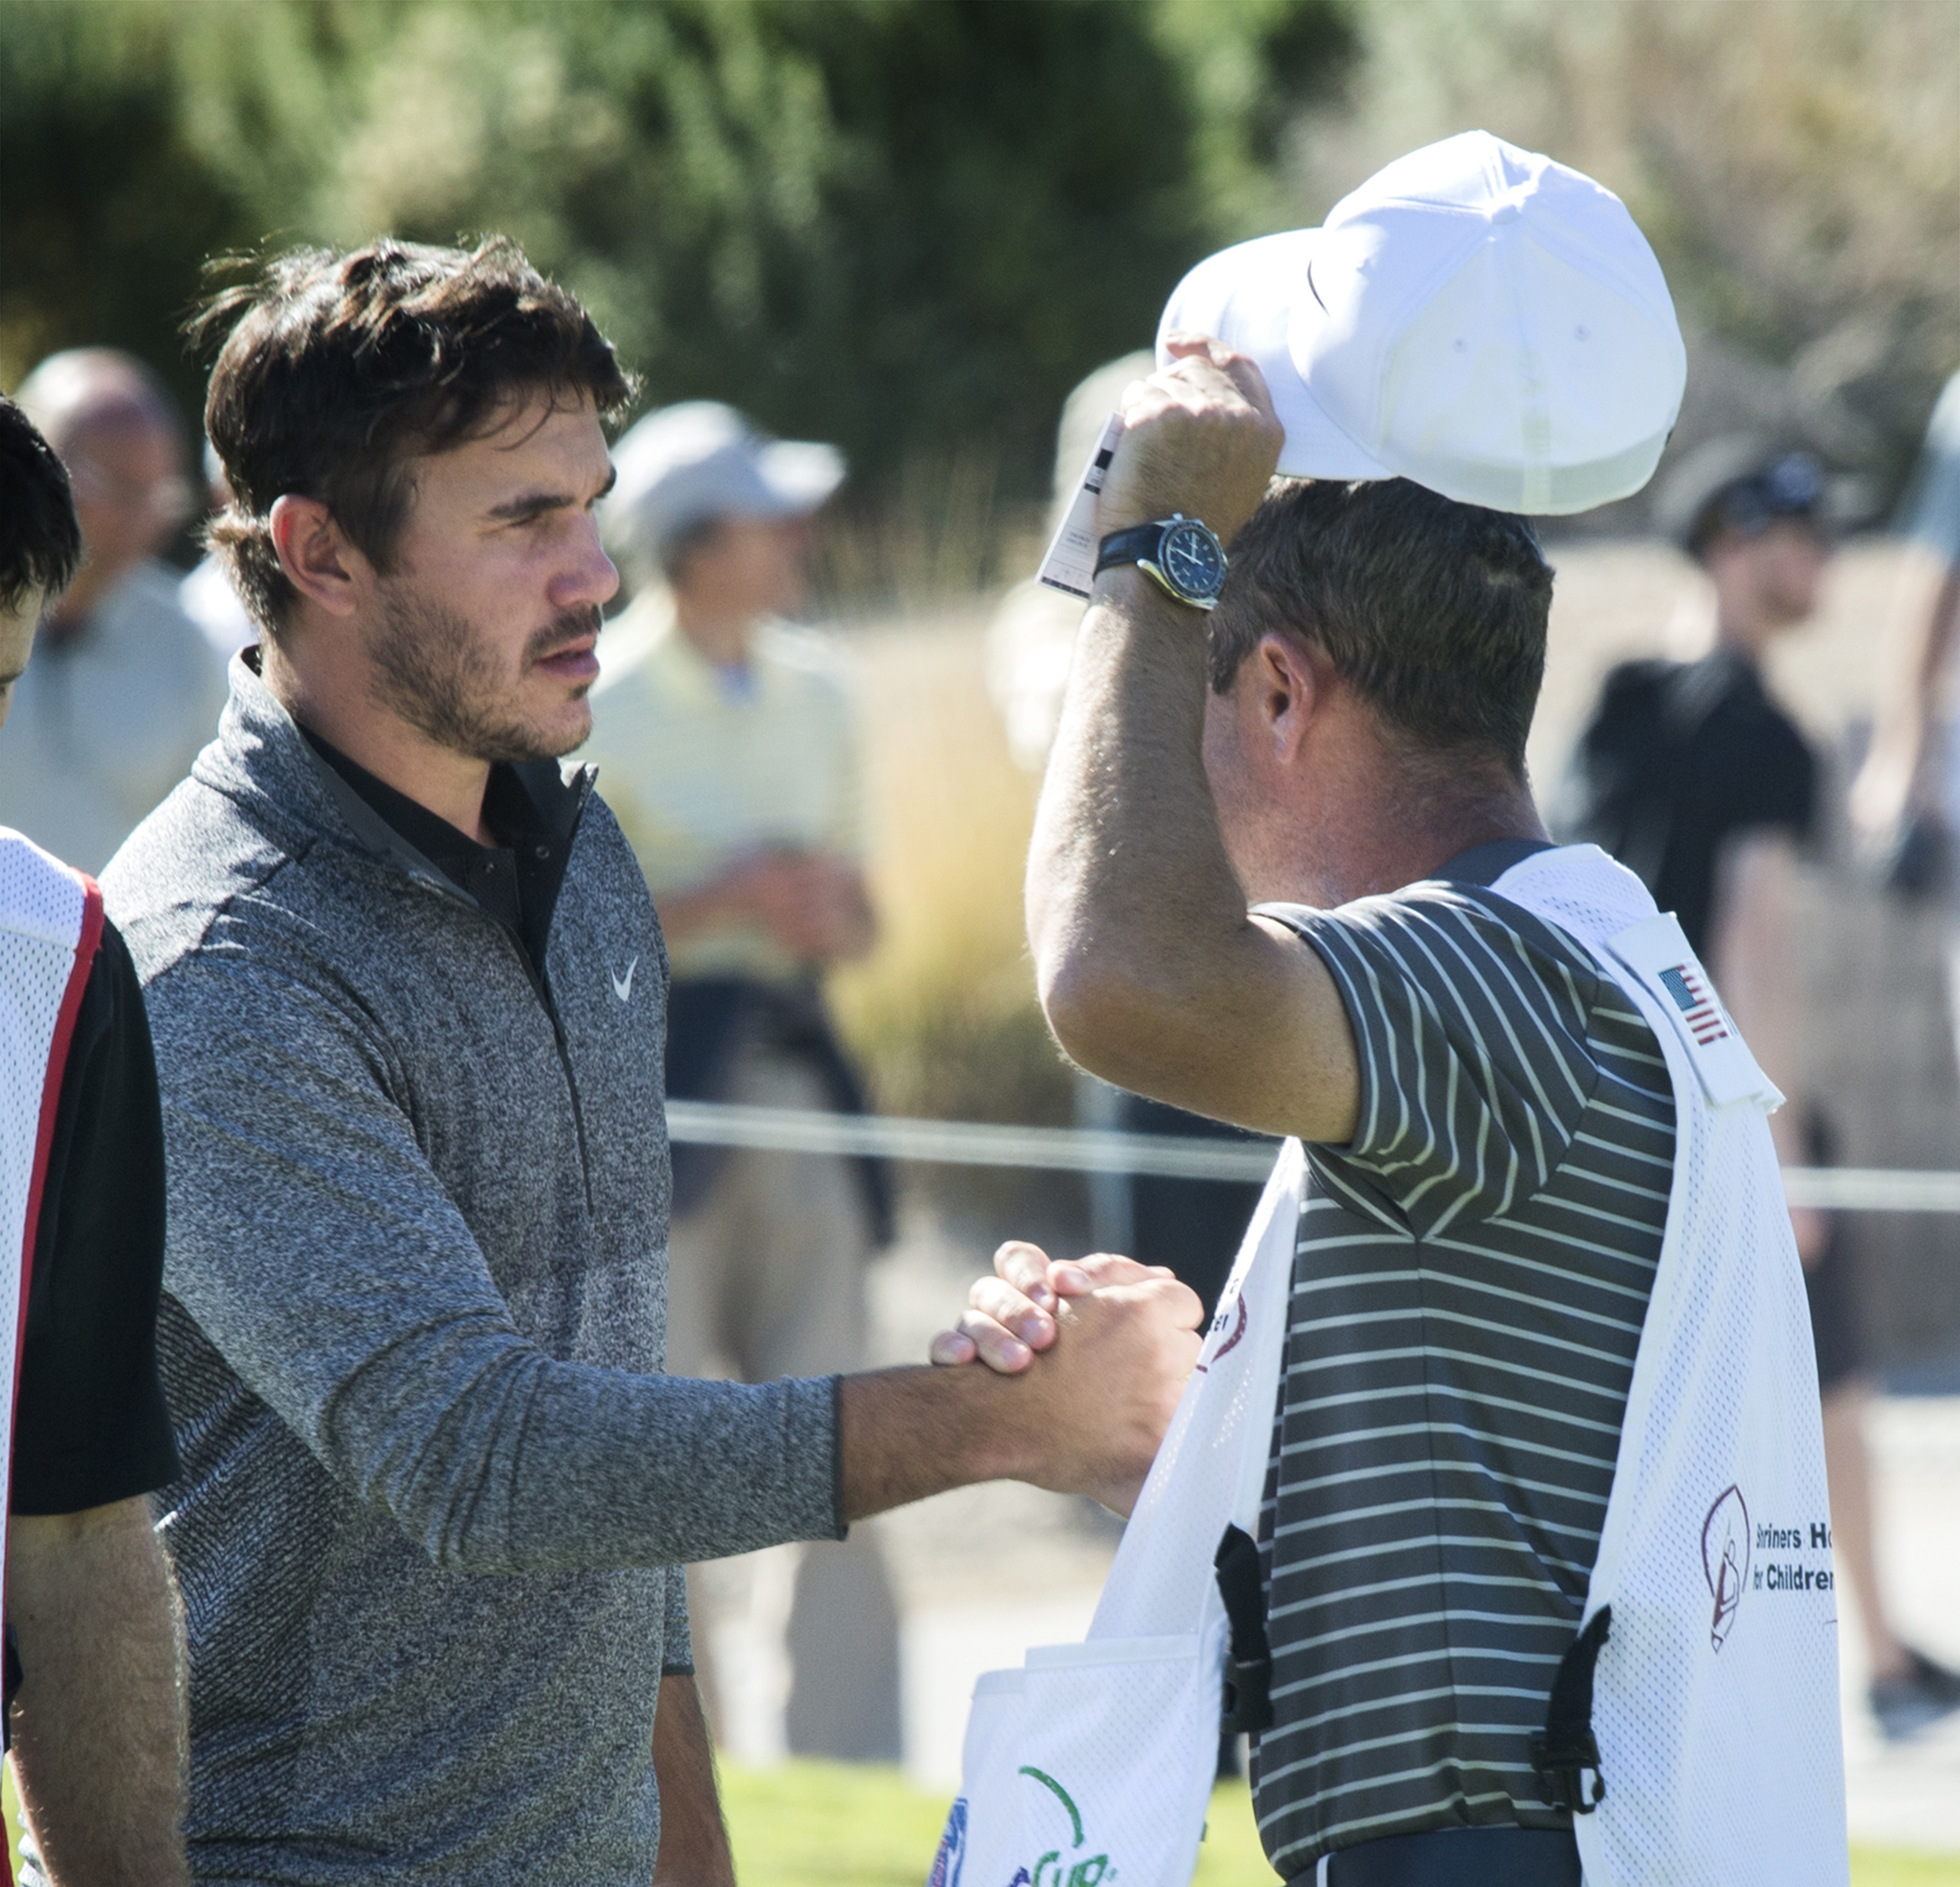 Brooks Koepka, left, shakes hands with a caddie on the ninth hole Thursday, Nov. 3, 2016, on the opening day of the Shriners Hospitals for Children Open golf tournament in Las Vegas. (Jeff Scheid/Las Vegas Review-Journal via AP)